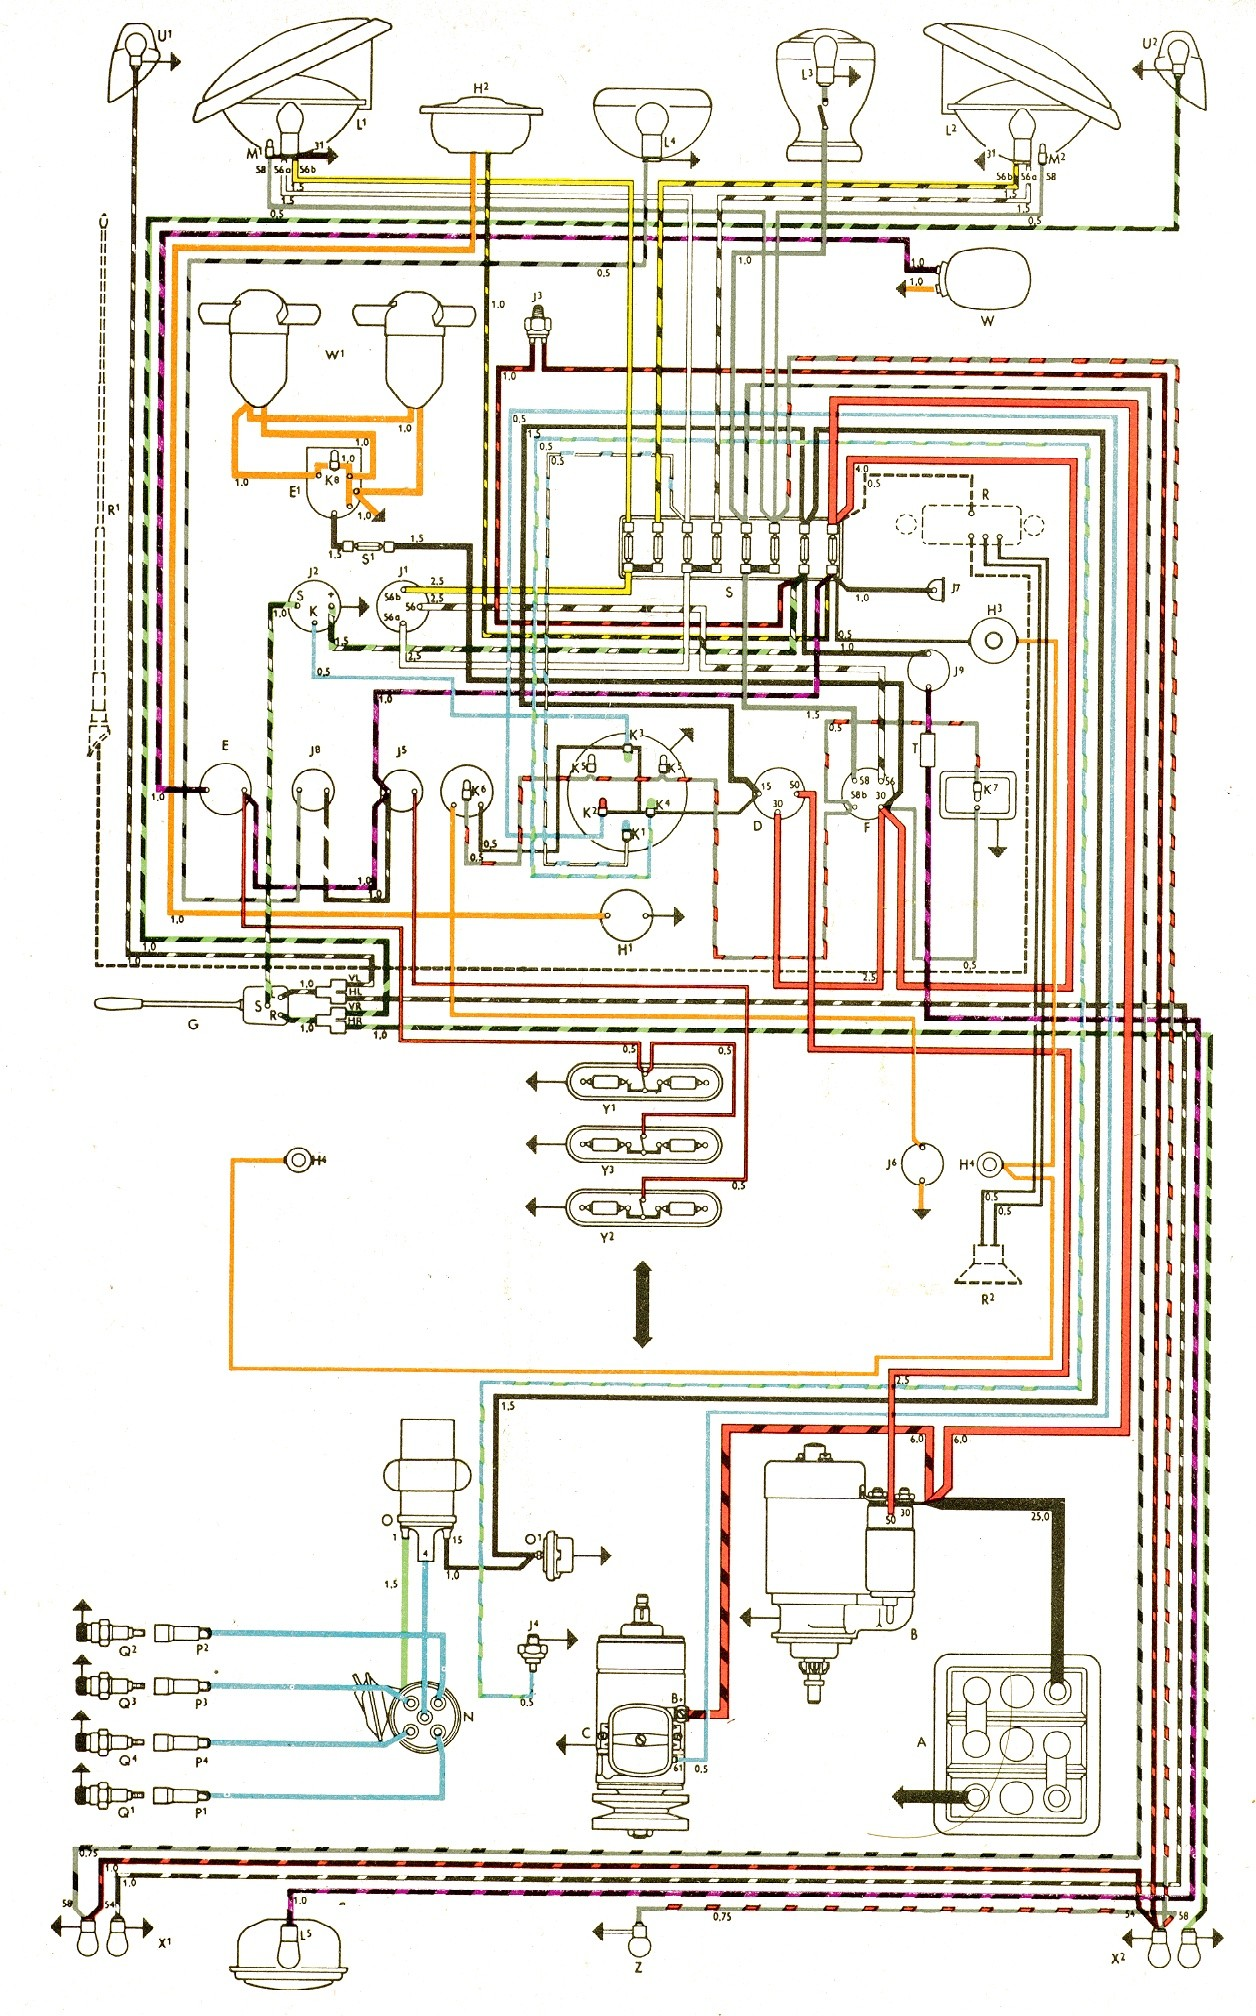 Beetle Engine Diagram 1968 Vw Beetle Fuse Box Wiring Vw Beetle Dune